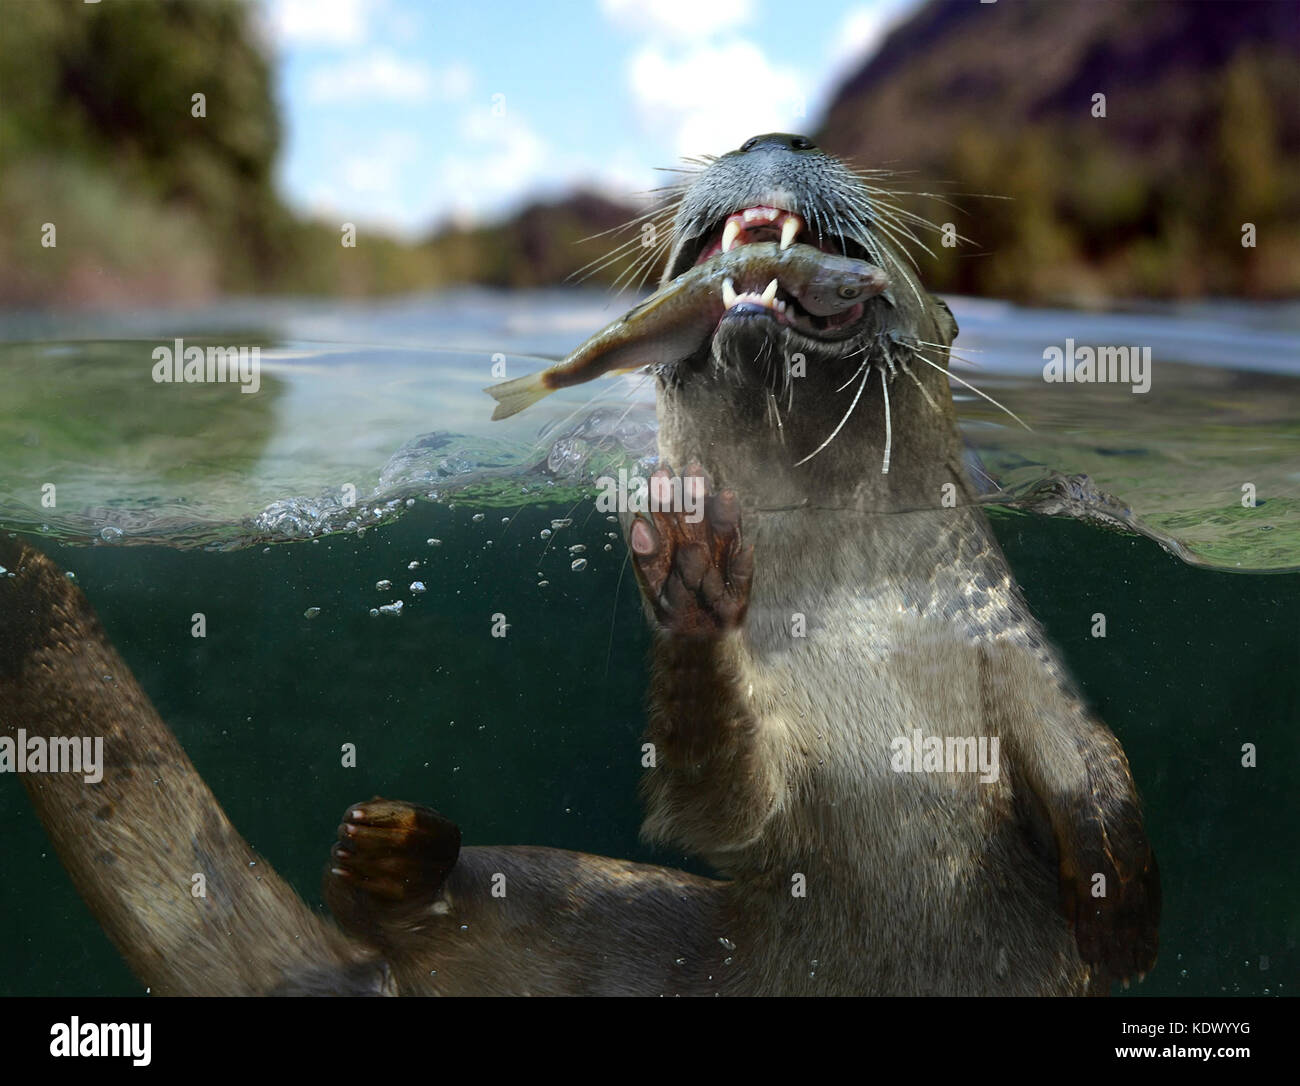 La loutre eurasienne, Lutra lutra. à la surface de manger un poisson fraîchement pêché. otter Photo Stock